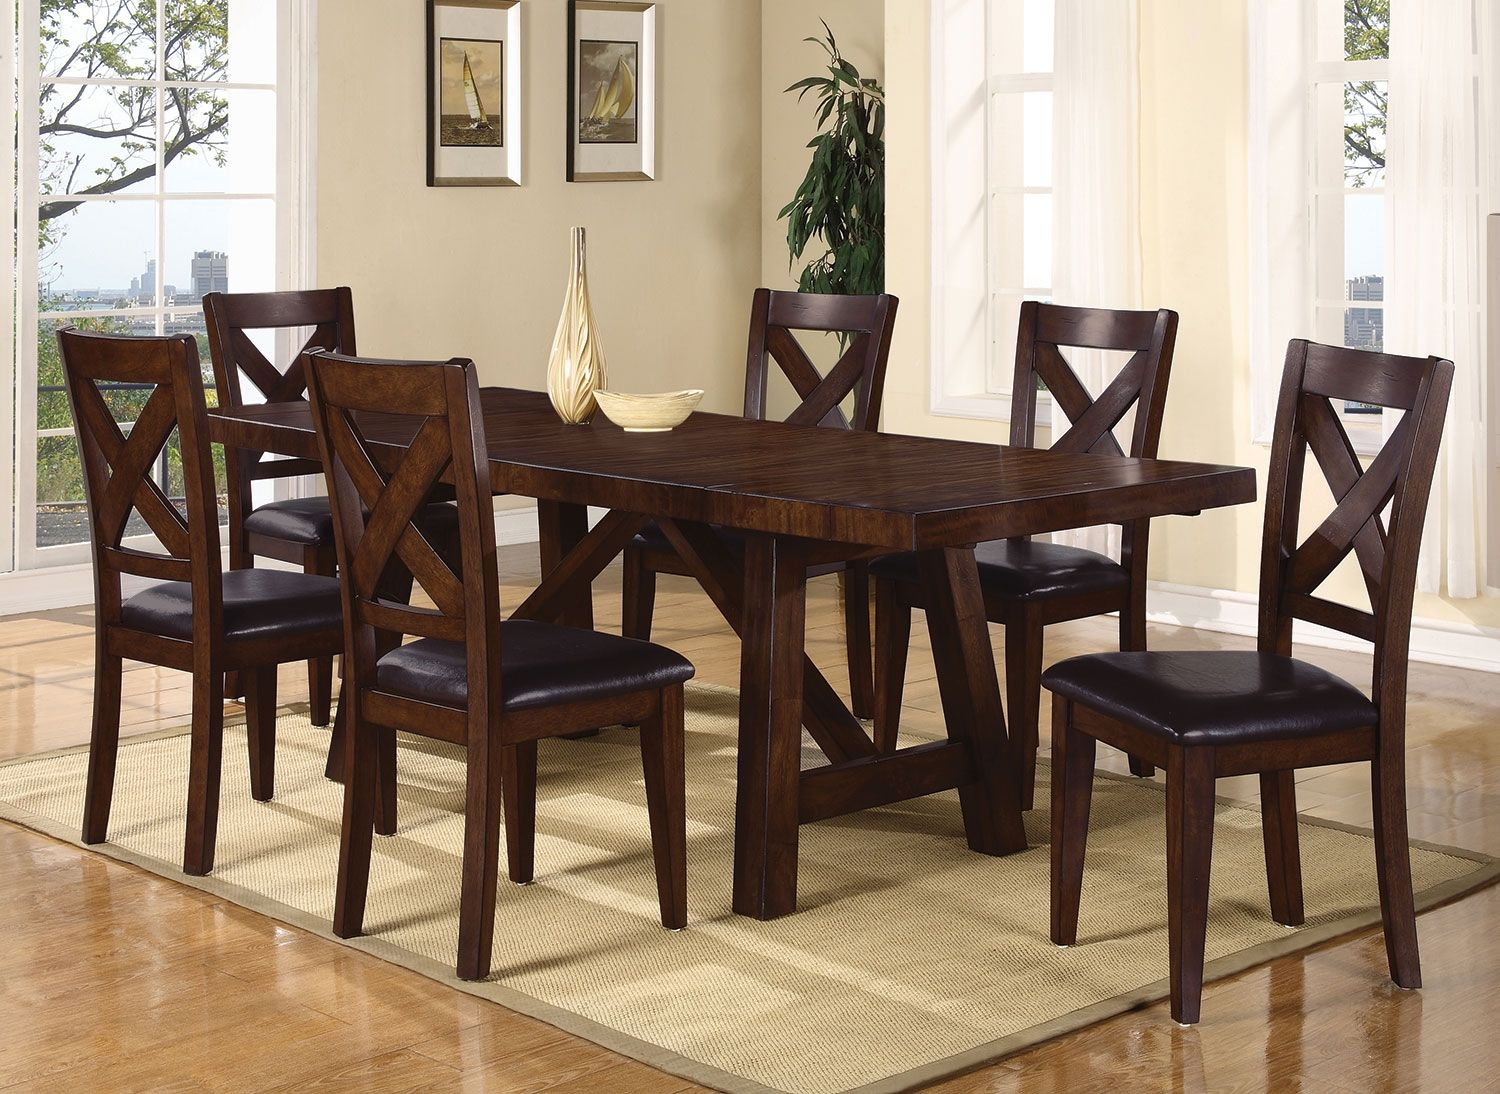 Adara 7 Piece Dining Package With Cross Back Chairs